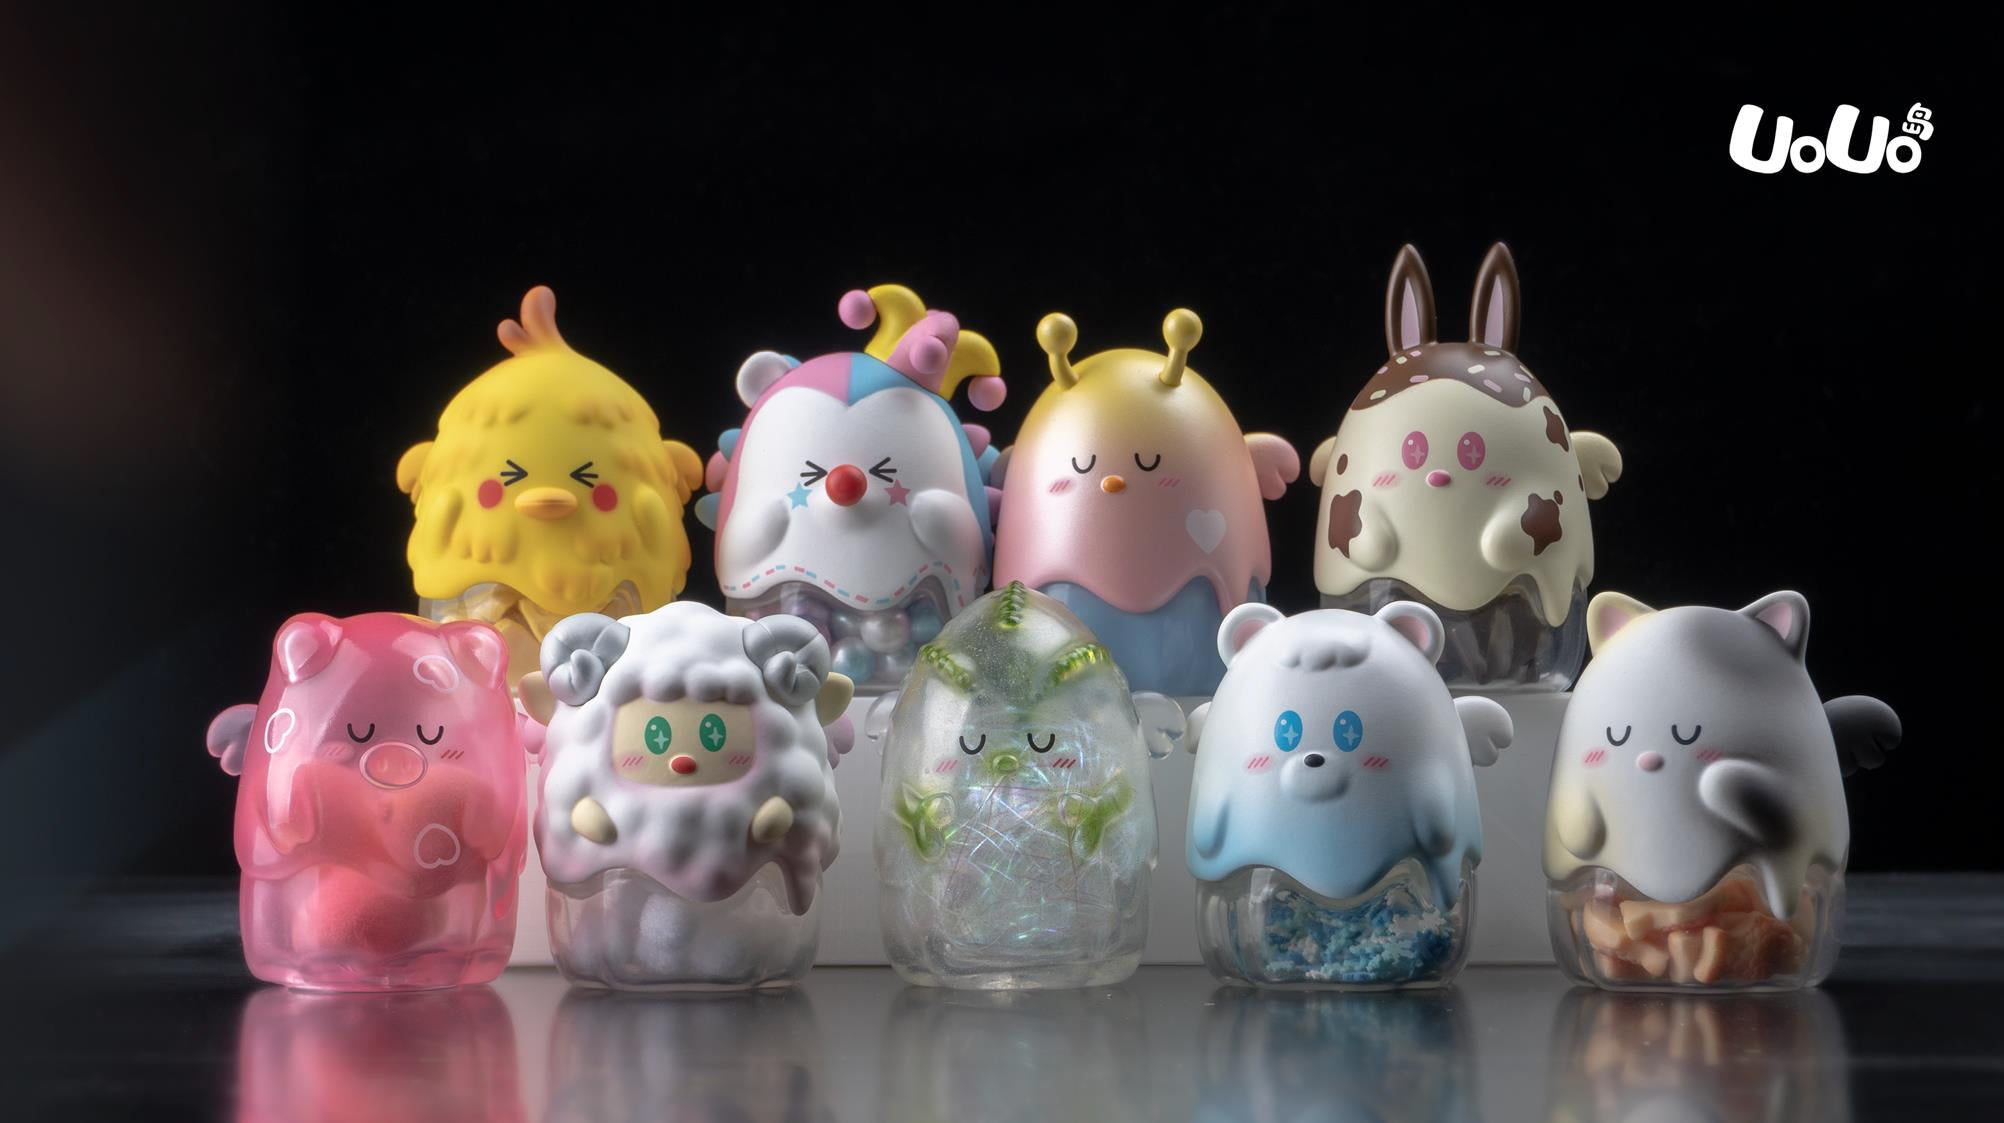 UOUO Zoo Blindbox Series by Cichy - Preorder